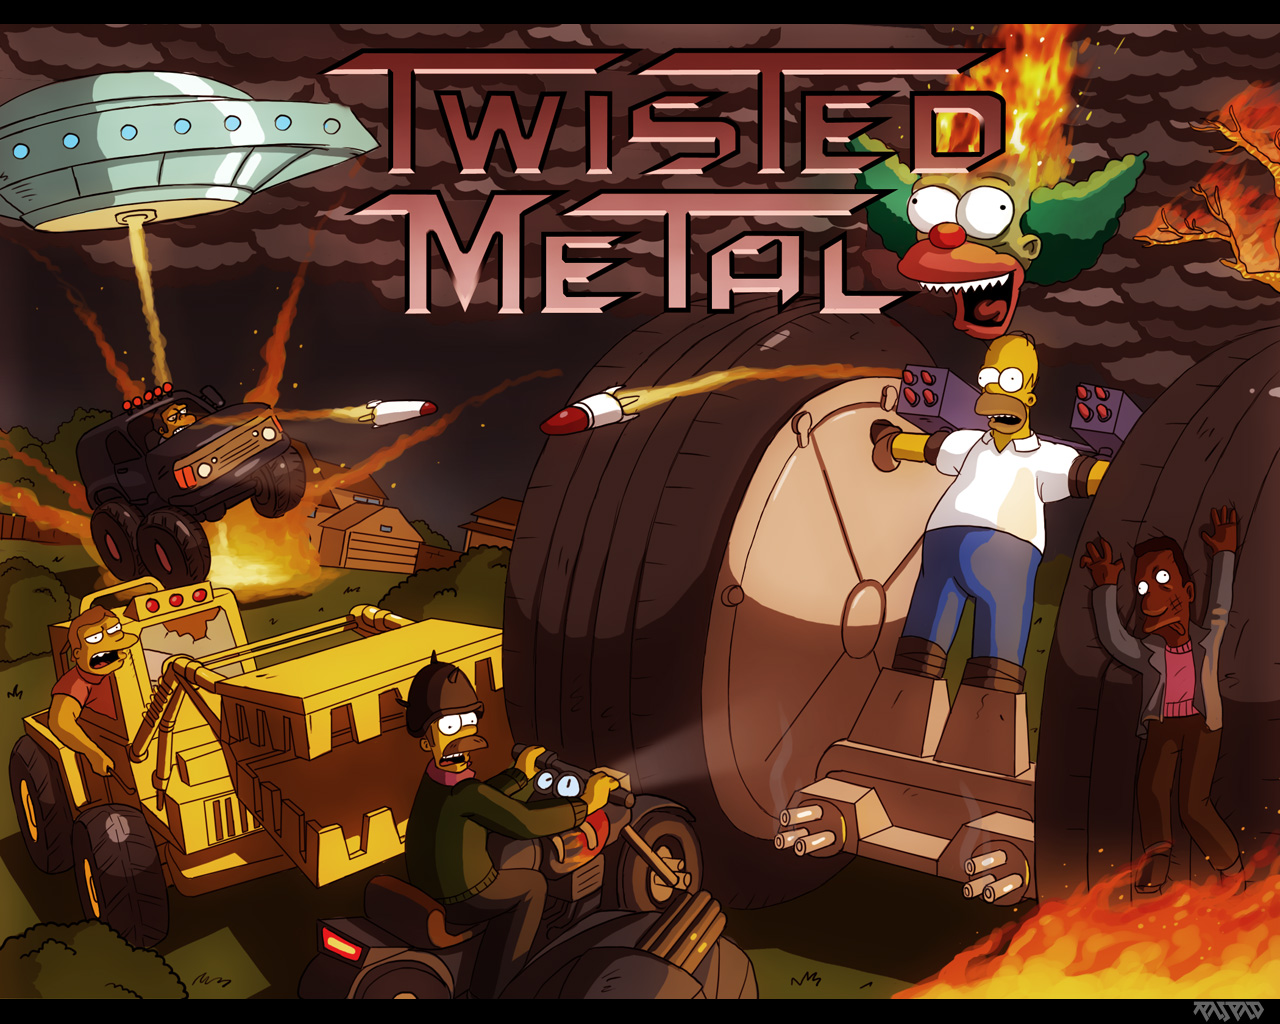 Free download Twisted Metal 2 PC Identi [1280x1024] for your